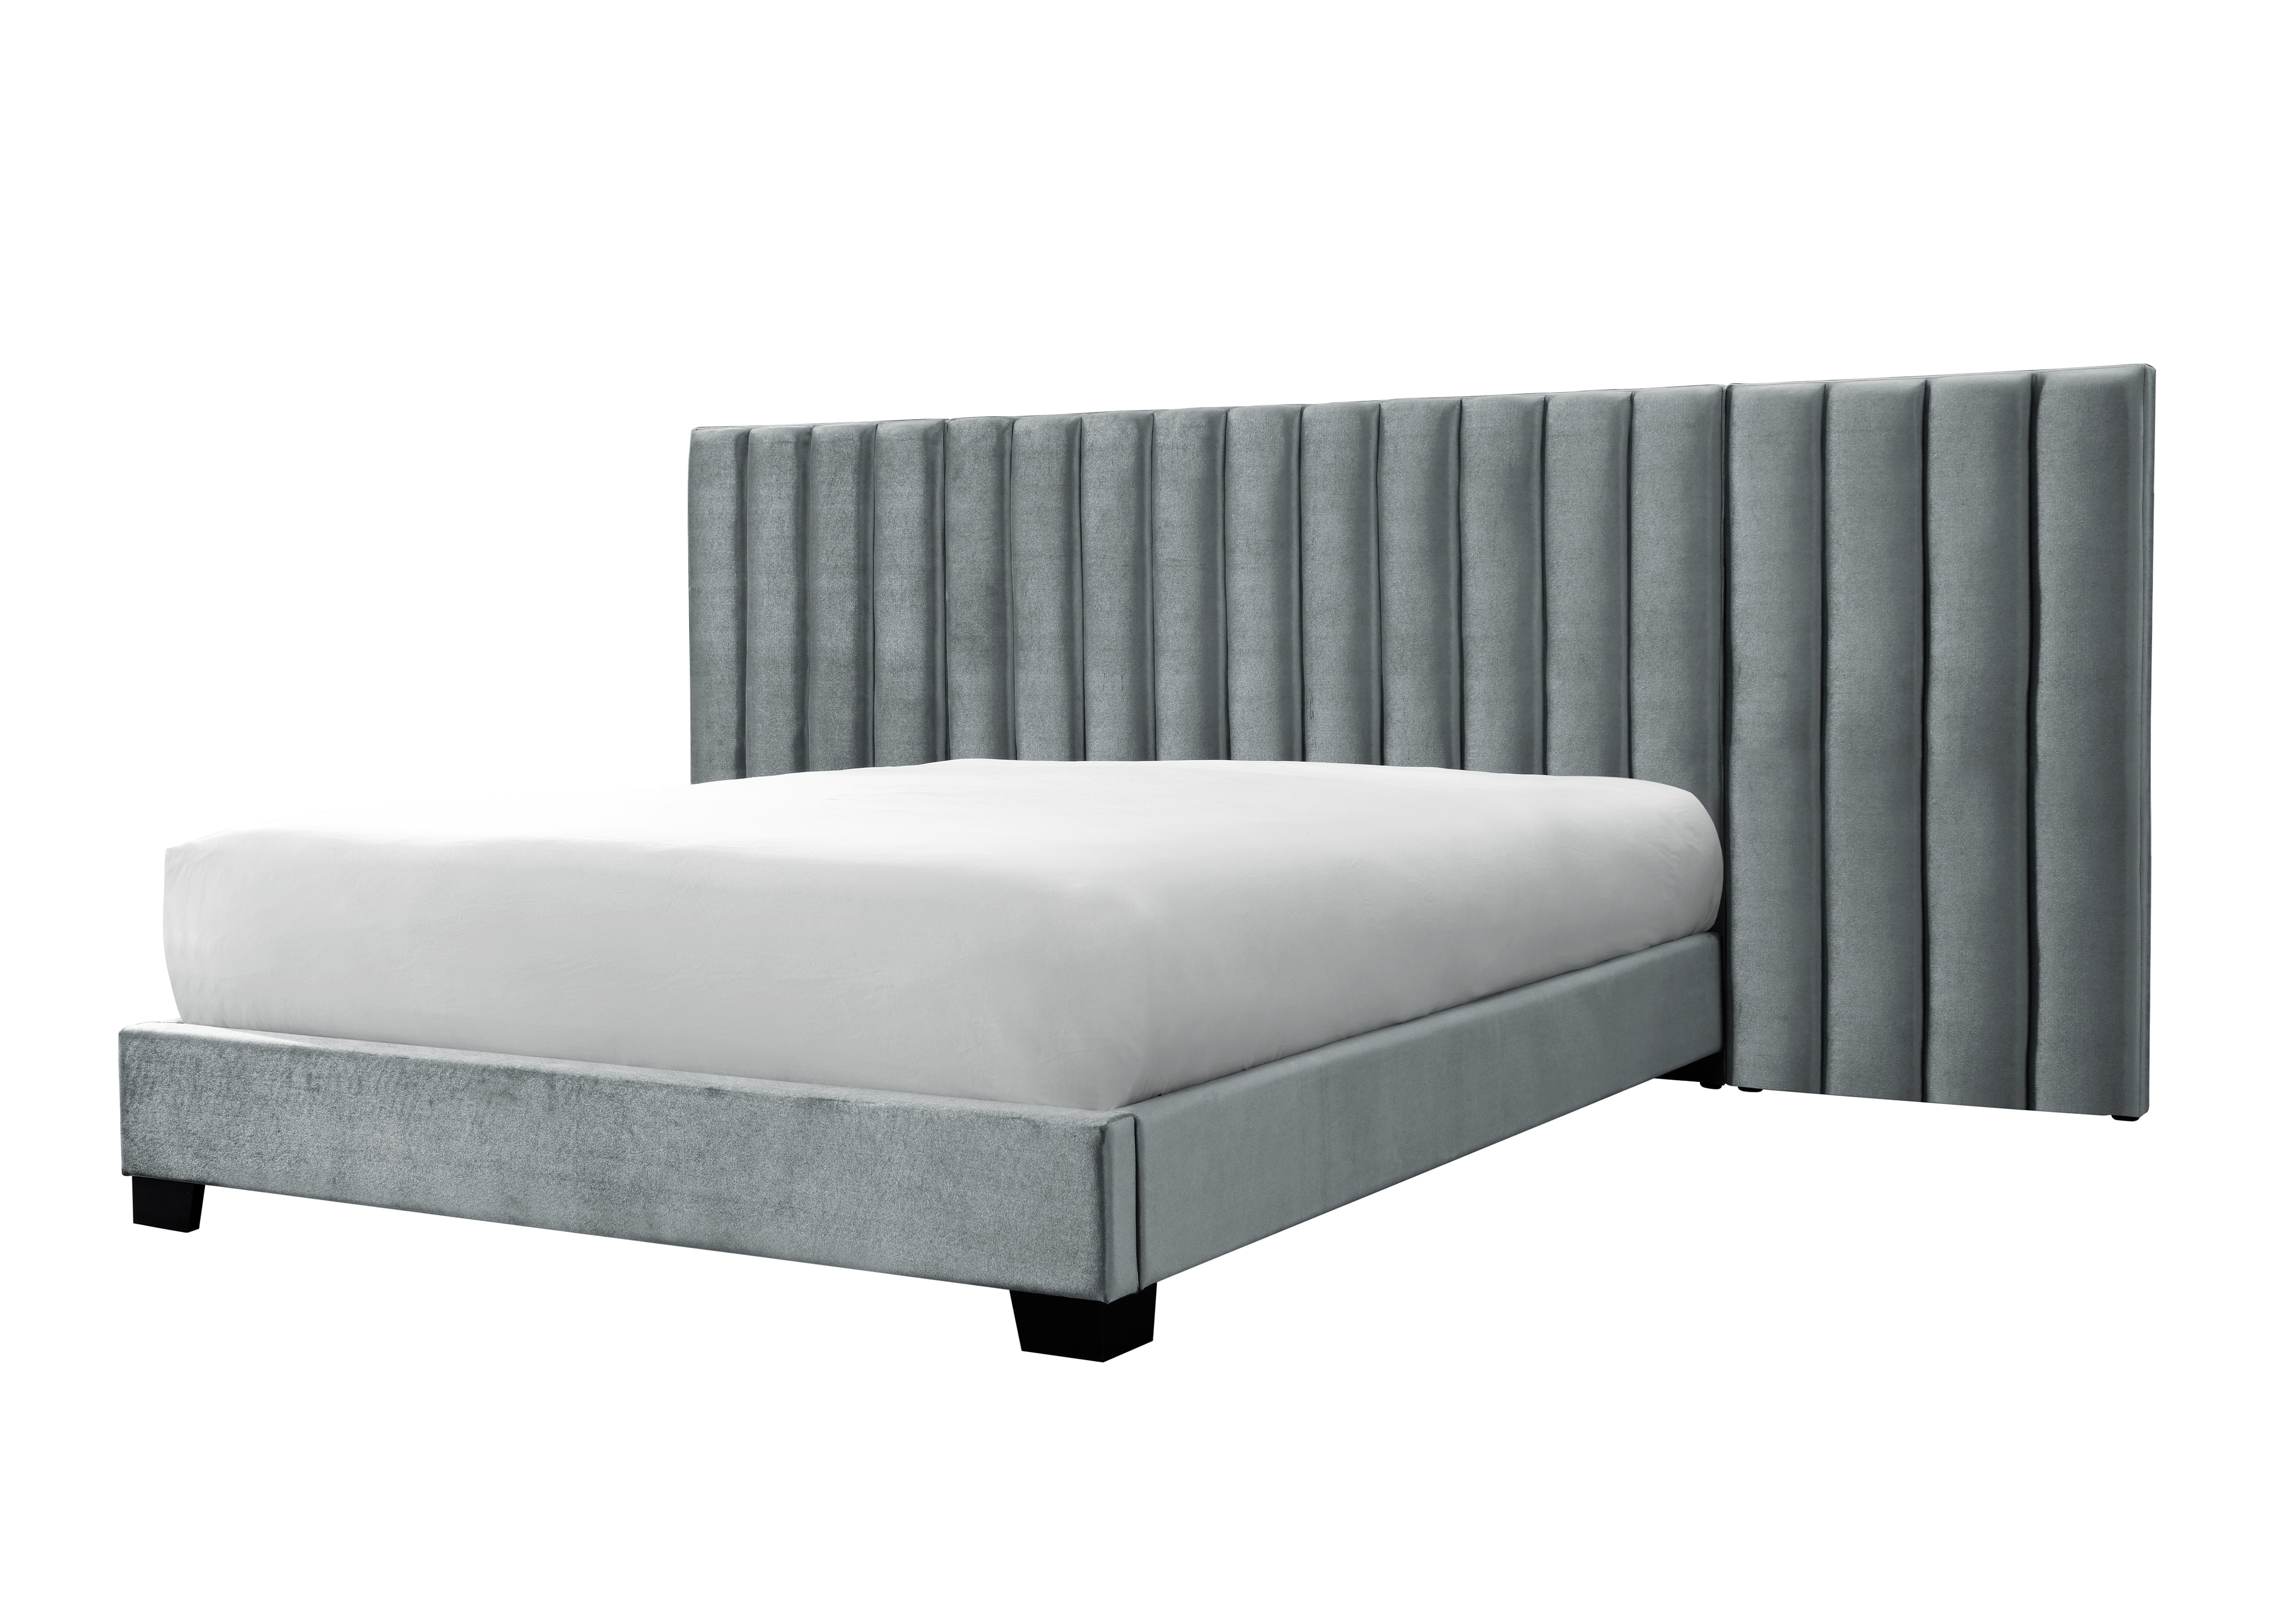 Jardin King Upholstered Wall Bed by Crown Mark at Northeast Factory Direct